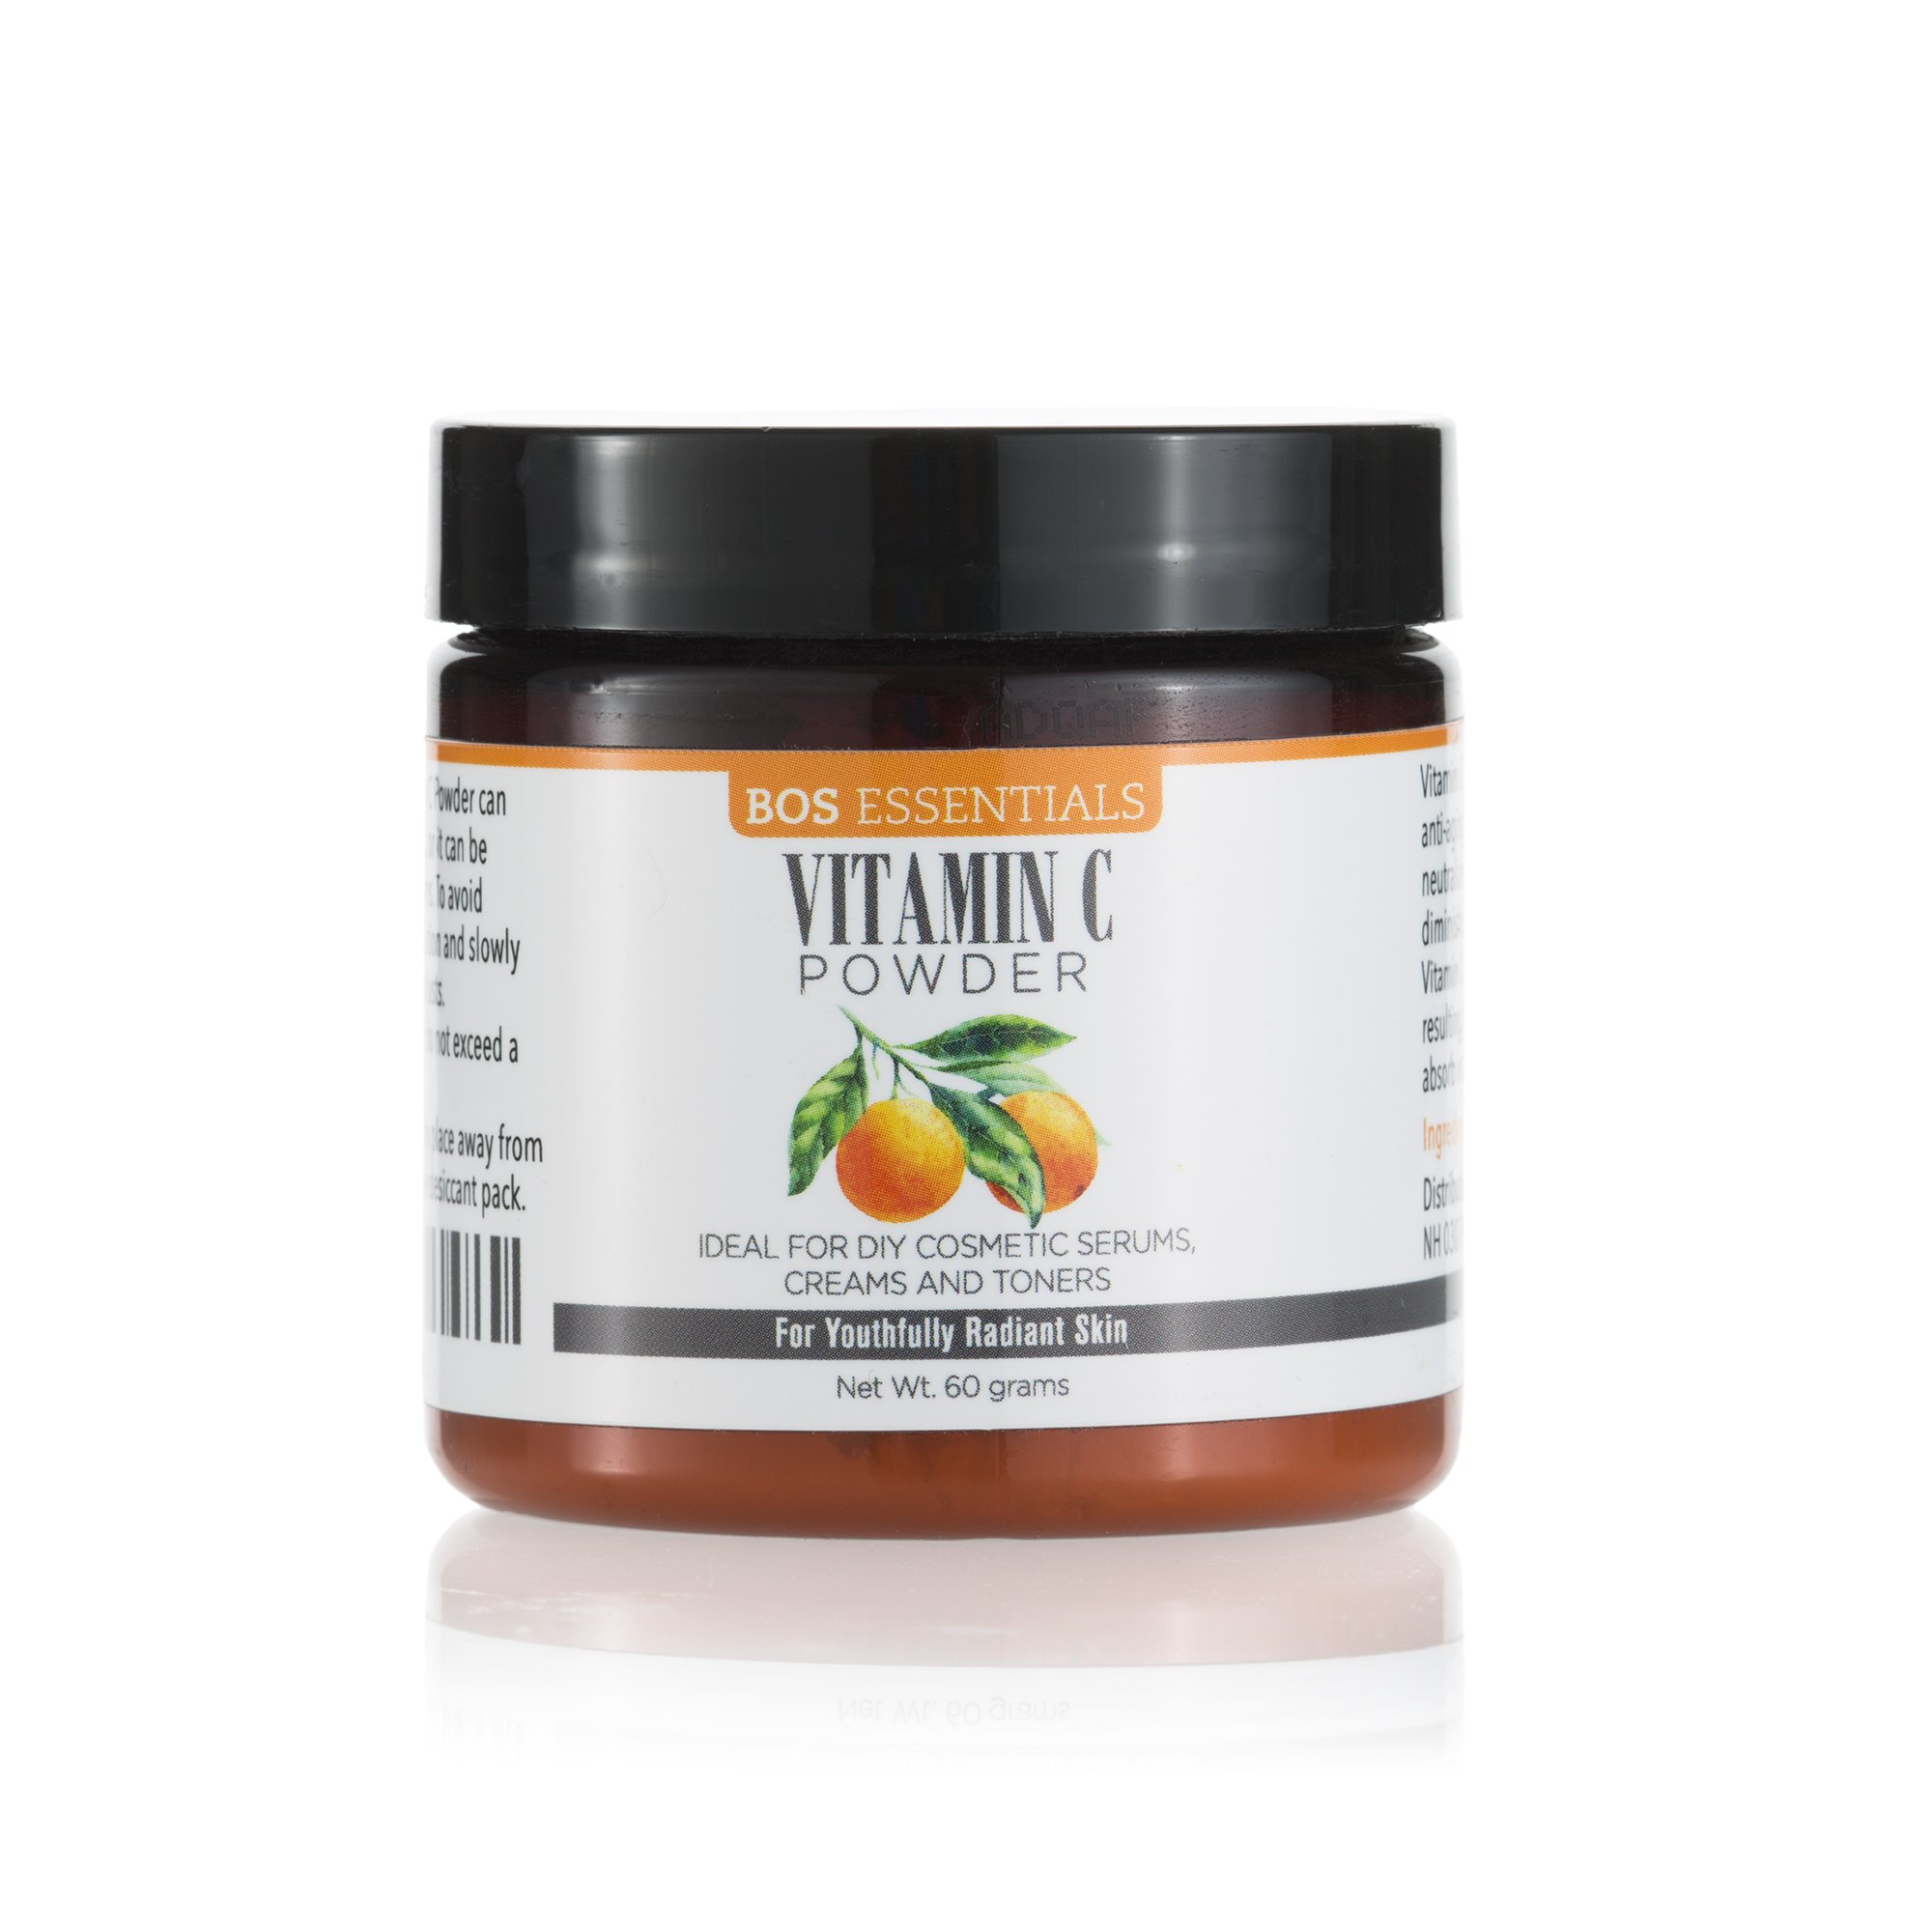 Bos Essentials - Ultra Fine Cosmetic Grade Vitamin C Powder | DISSOLVES INSTANTLY IN WATER | Finest quality available (325 MESH) | Make your own fresh and effective vitamin C serum